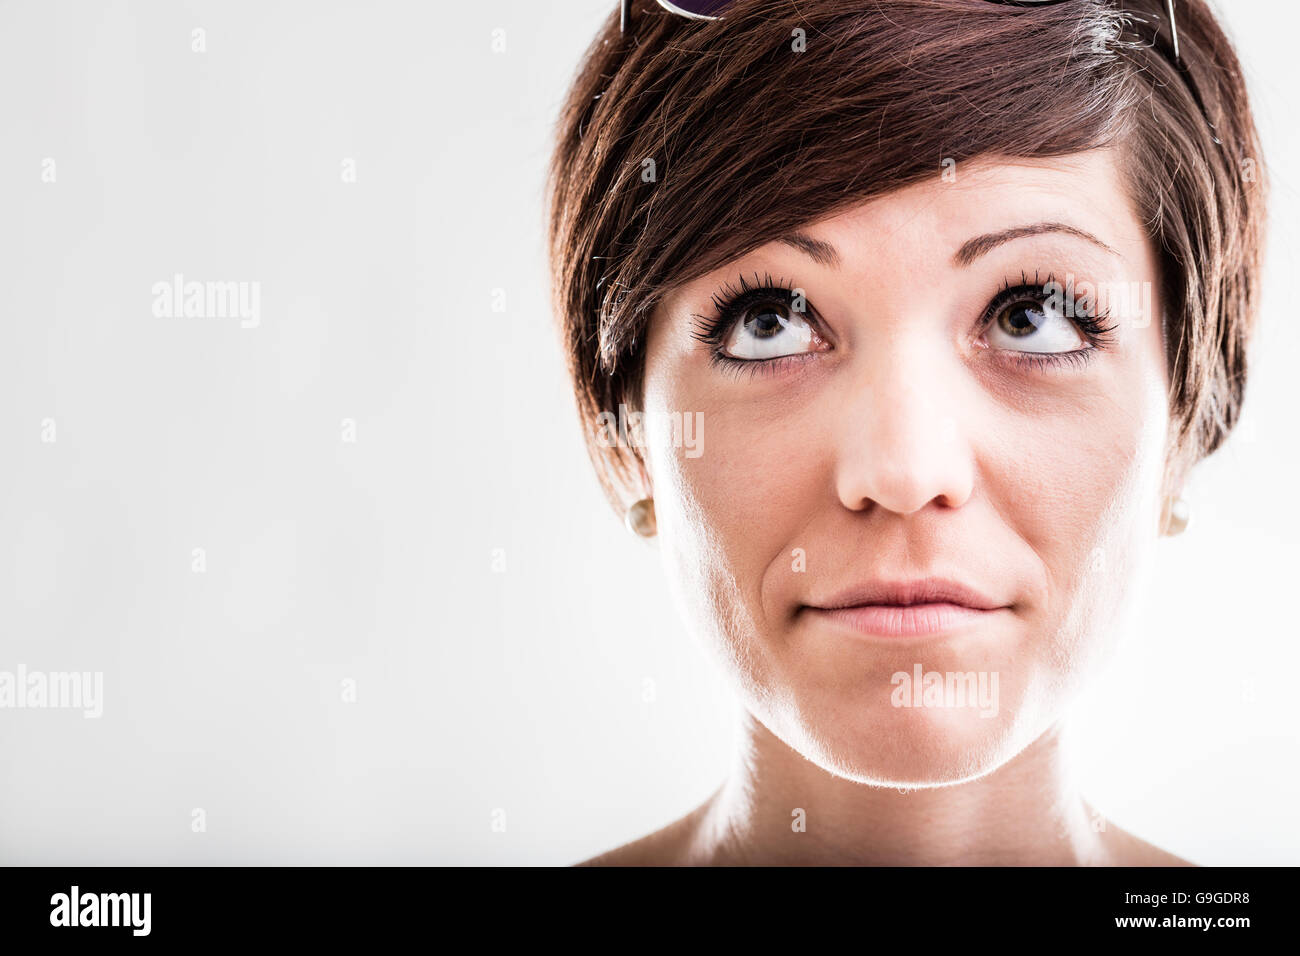 Thoughtful attractive woman looking up into the air with a serious pensive expression, close up head shot on white - Stock Image